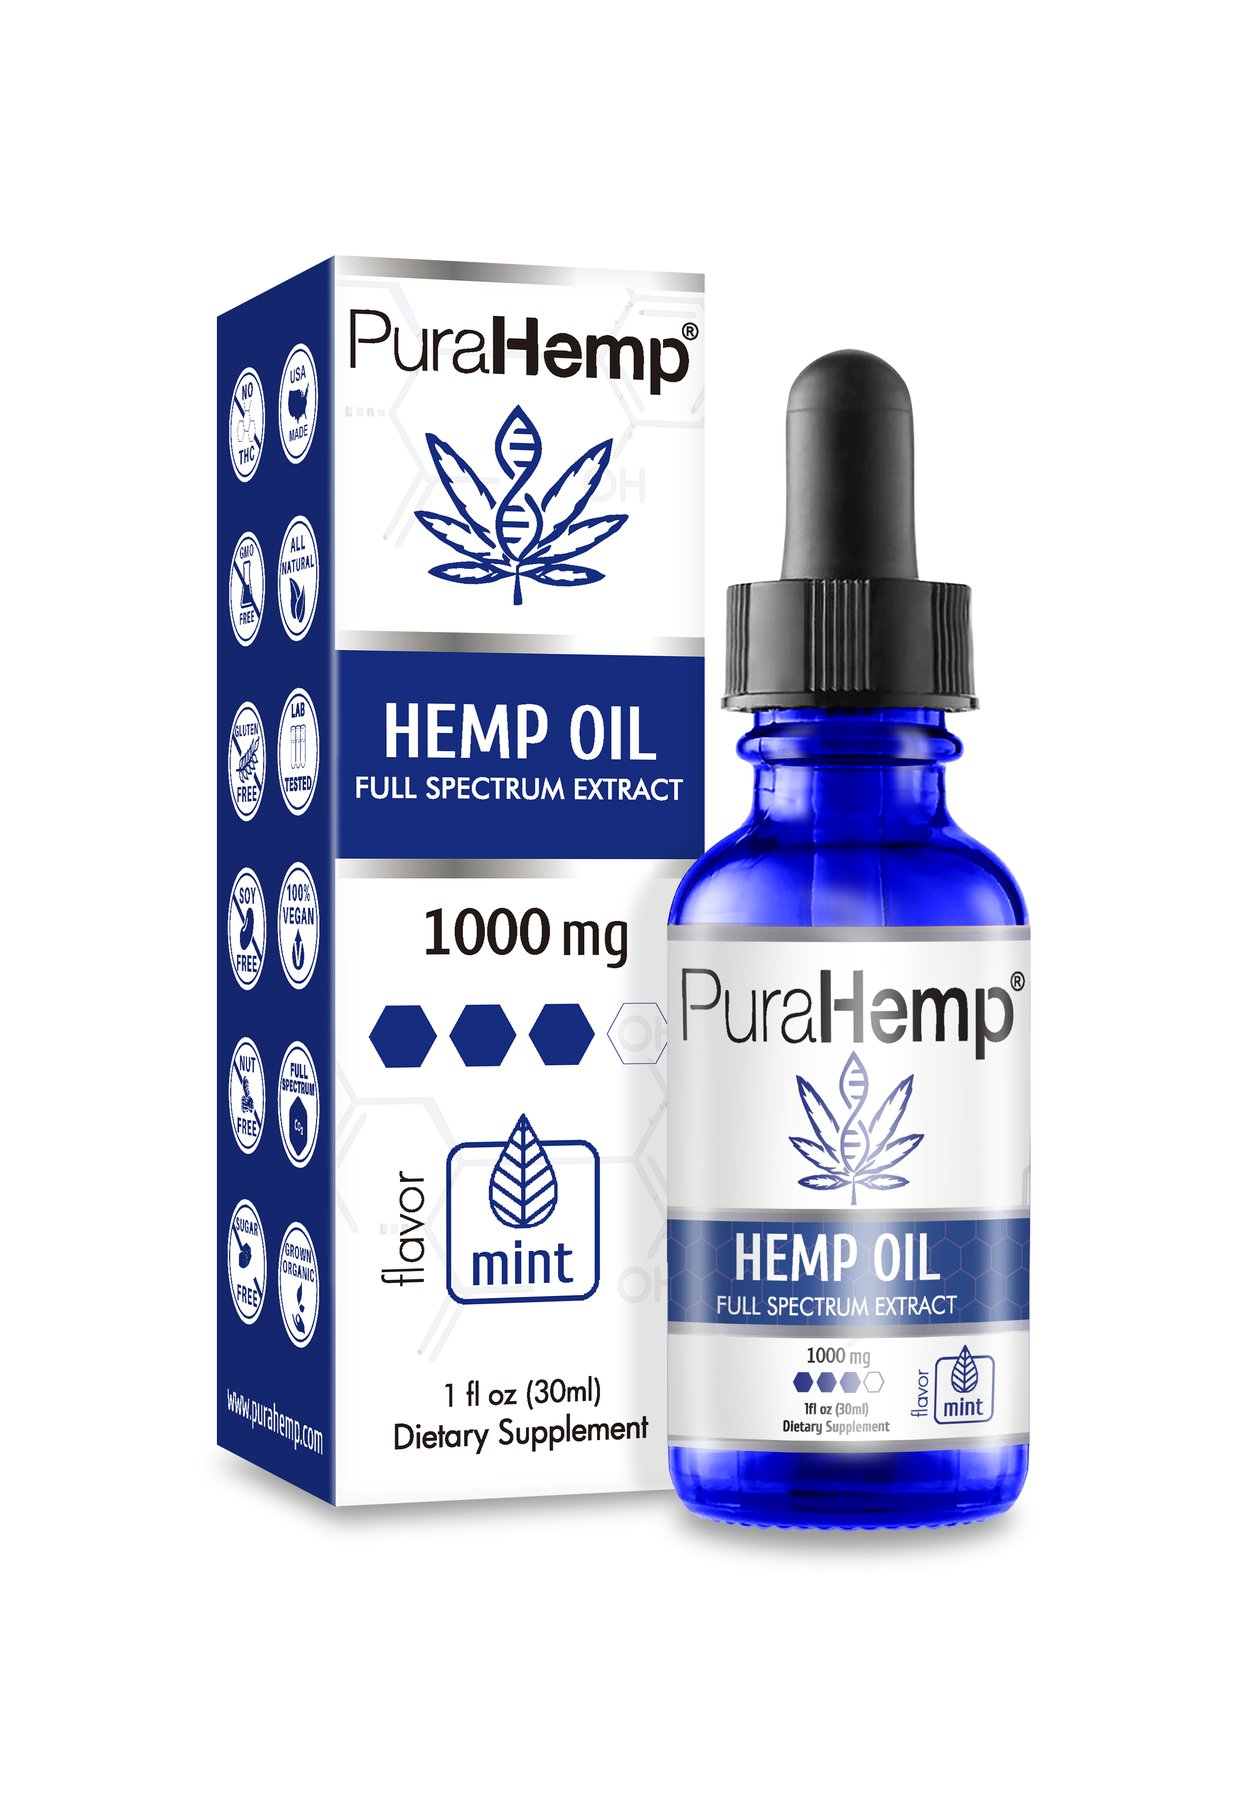 PuraHemp CBD Oil Drops Mint Flavor 1000 mg Hemp CBD Oil